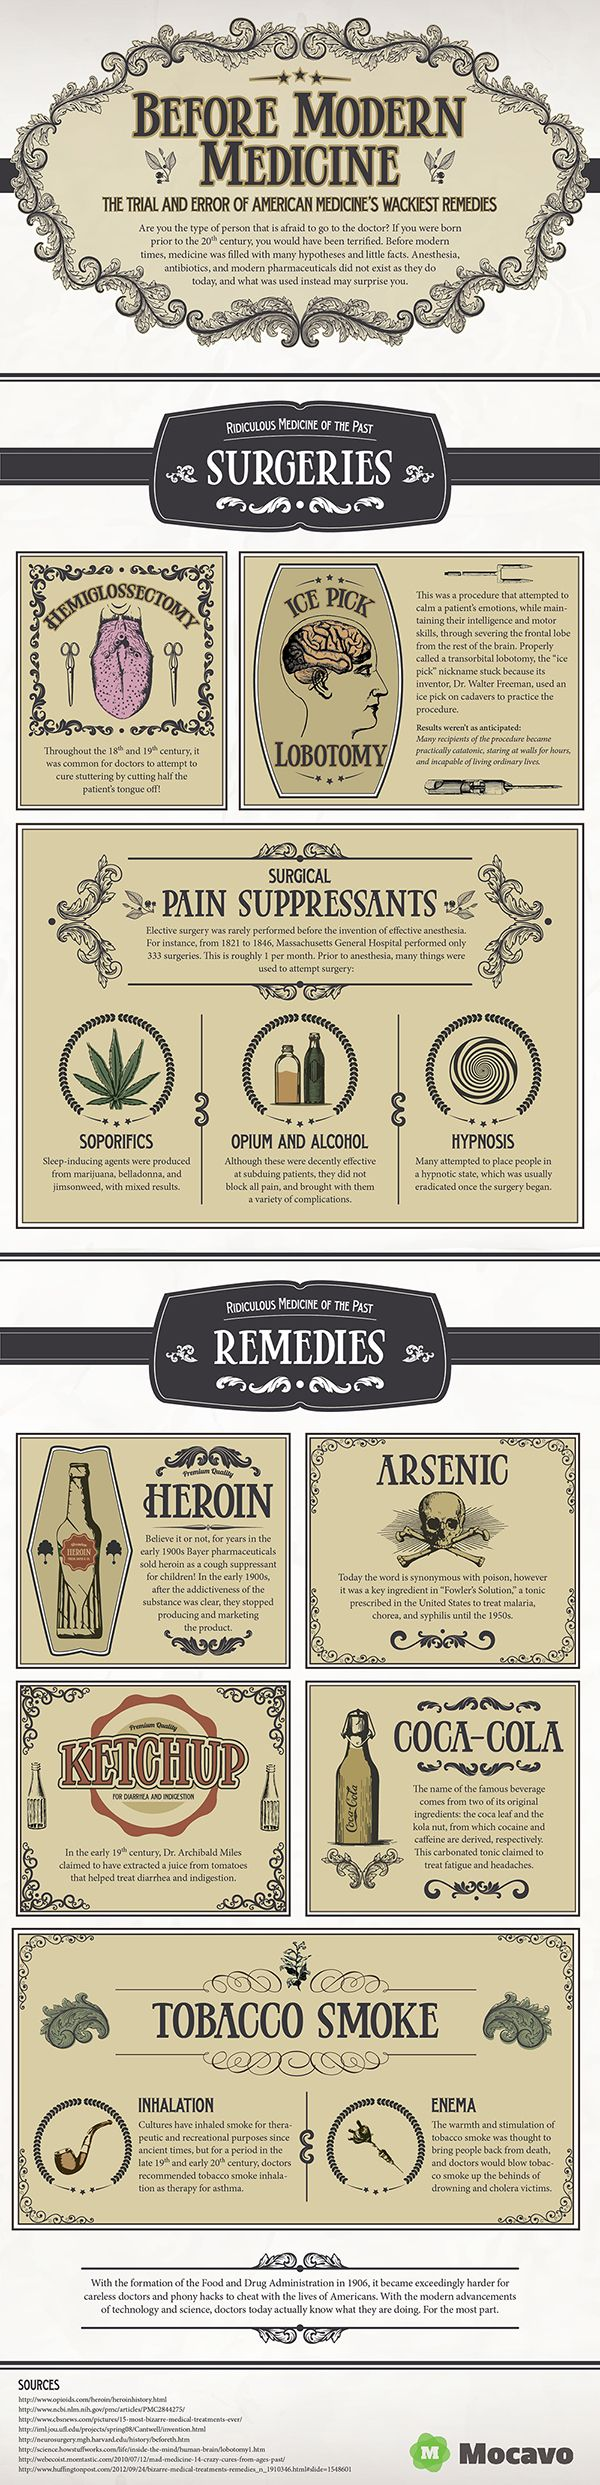 Some strange medical practices of the past.